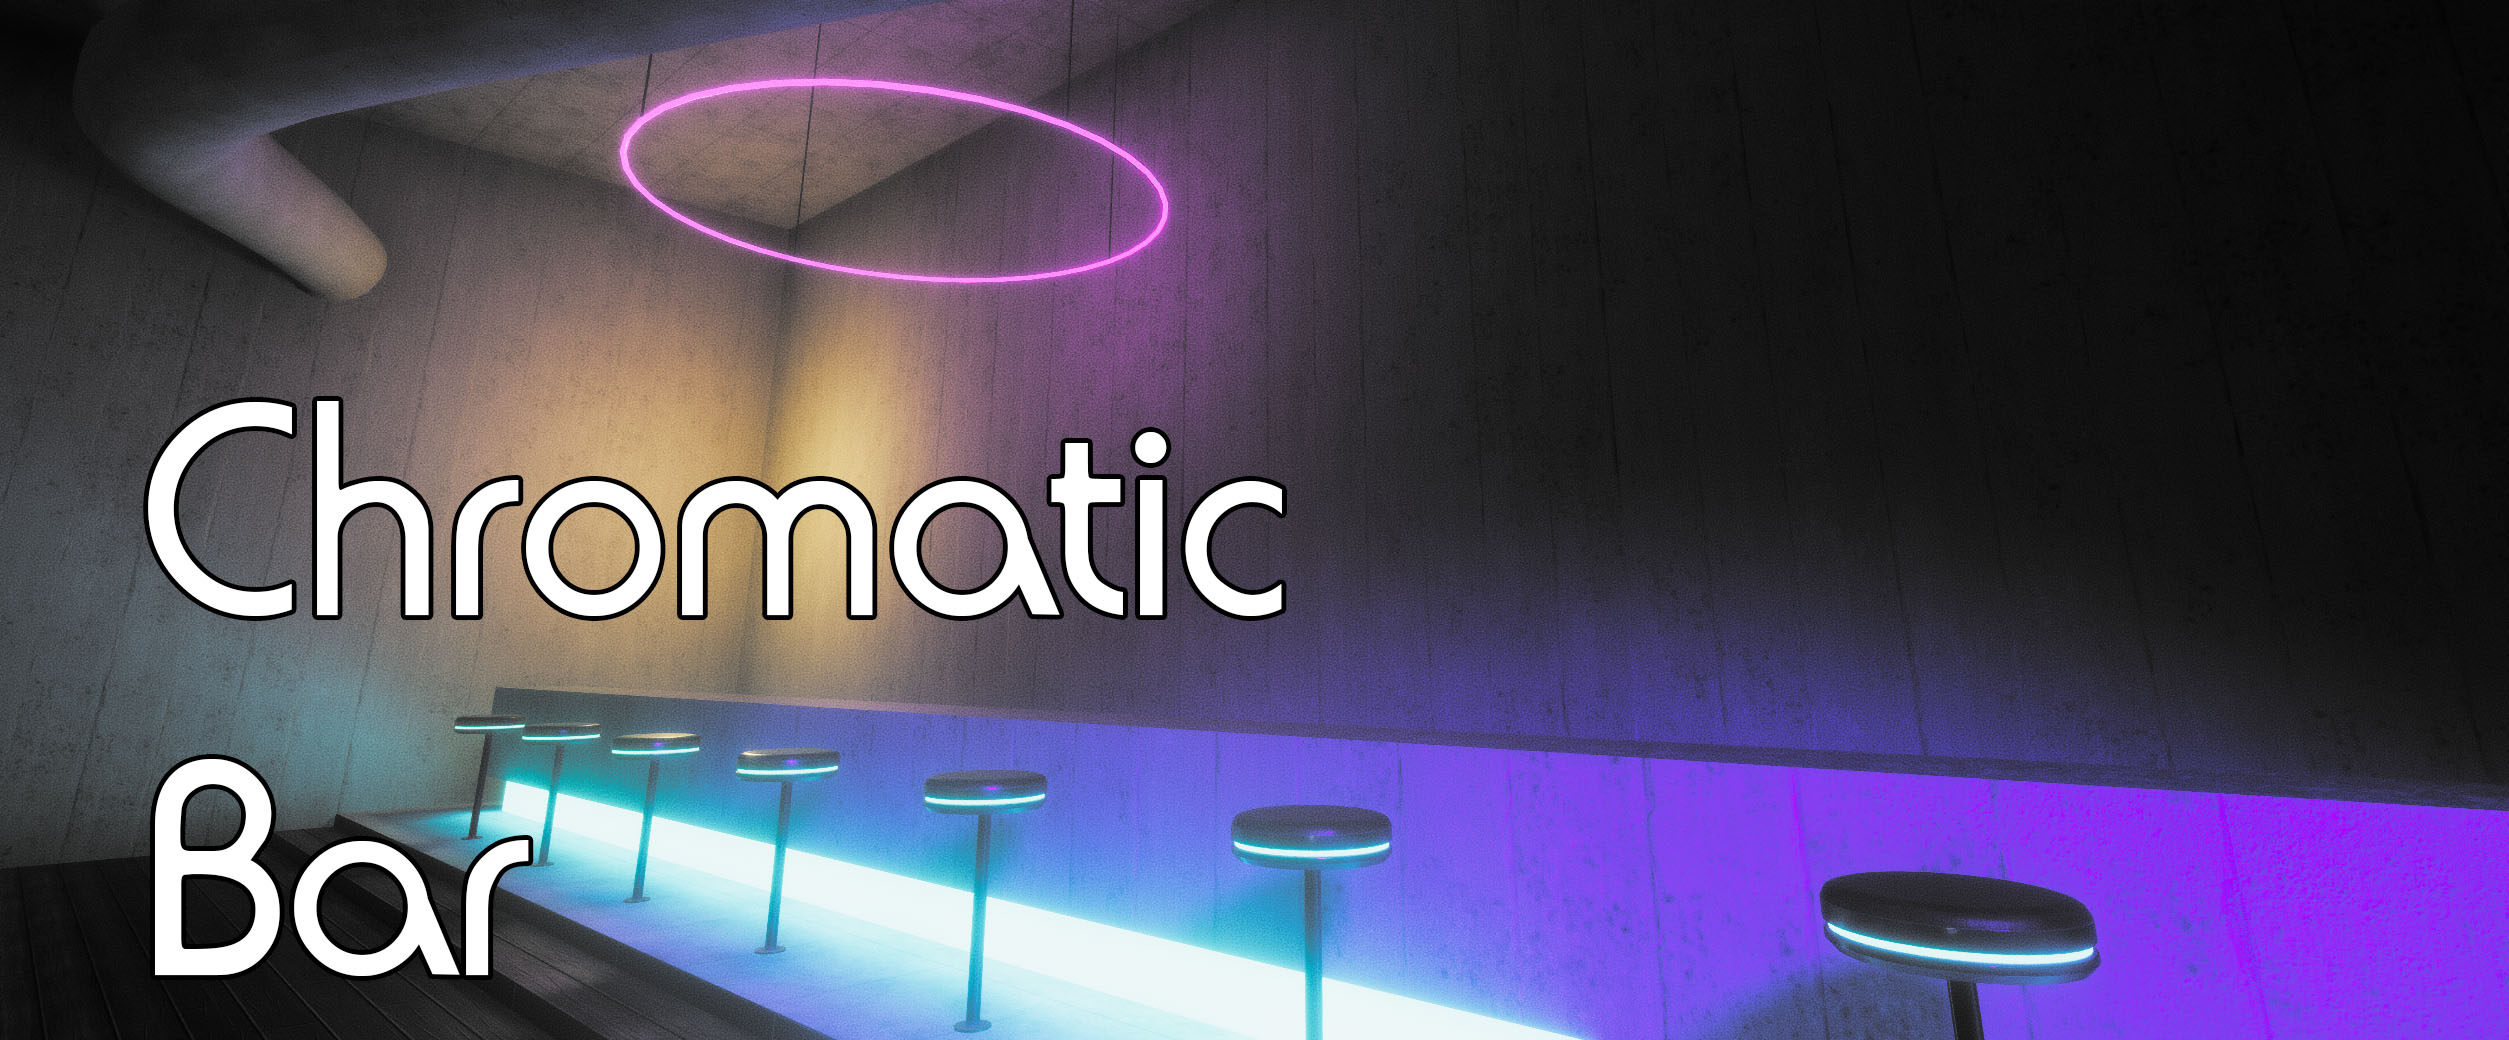 Chromatic Bar